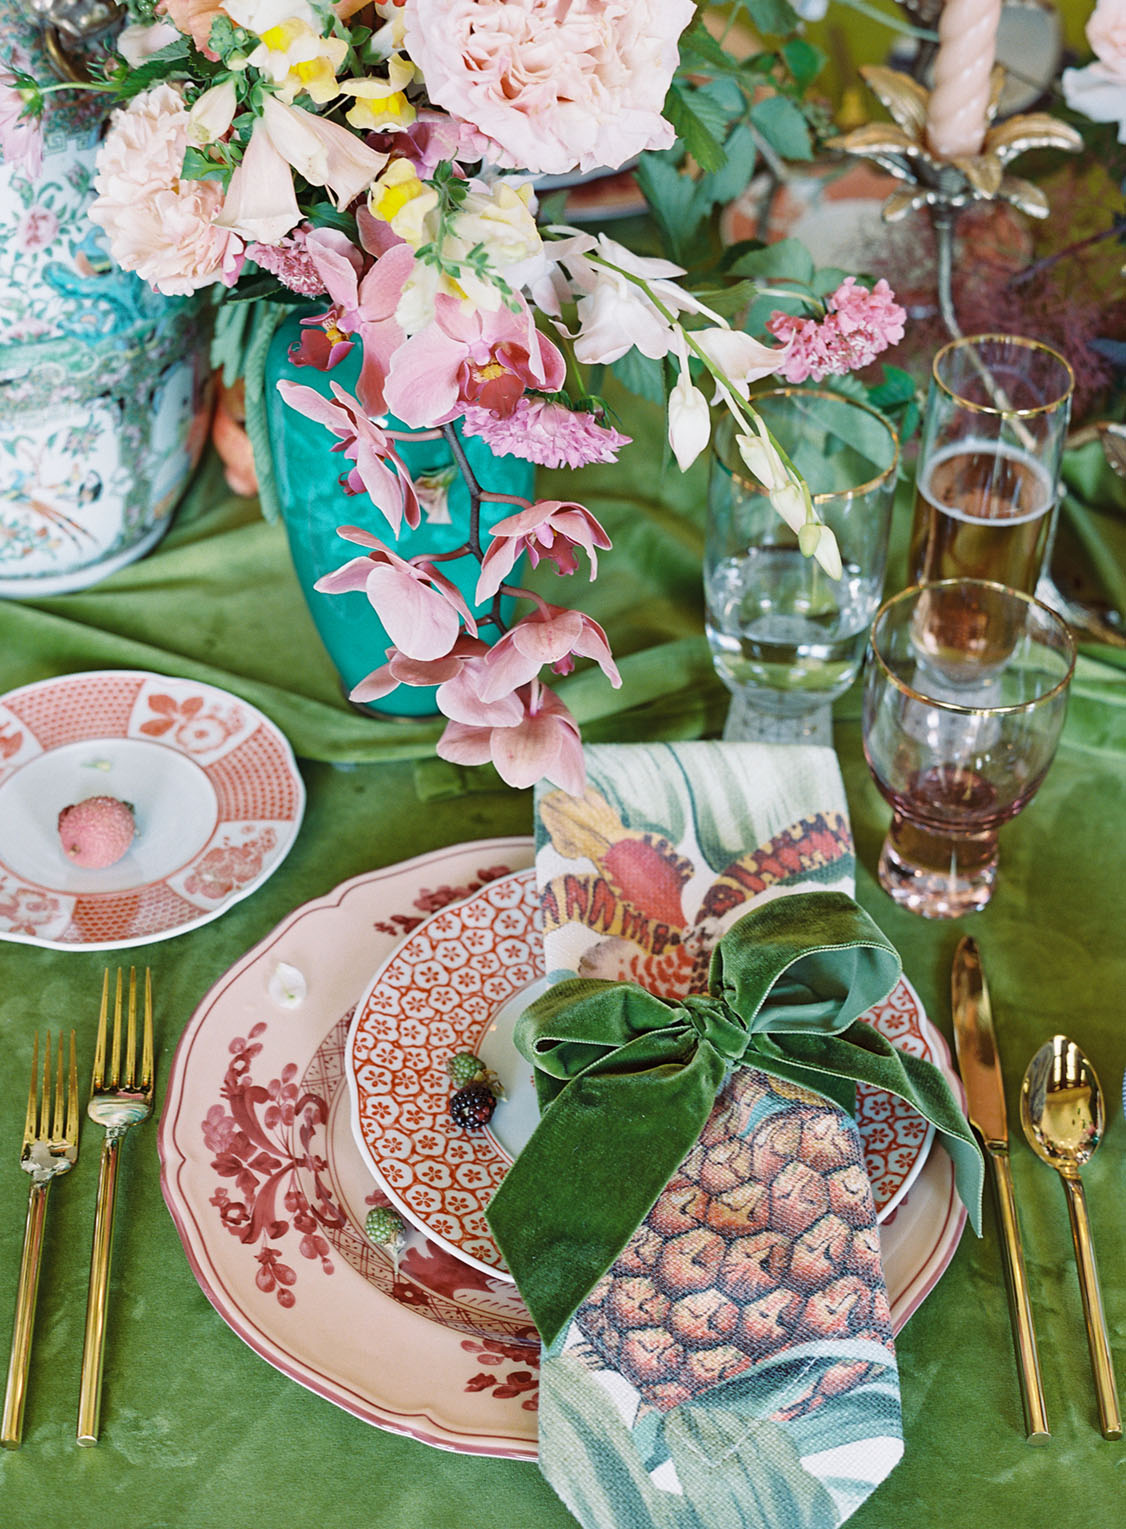 Place setting with coral-colored dinnerware patters, gold flatware, a green velvet bow around a botanical-print napkin, and a green velvet tablecloth. Creative direction by Lustre Theory